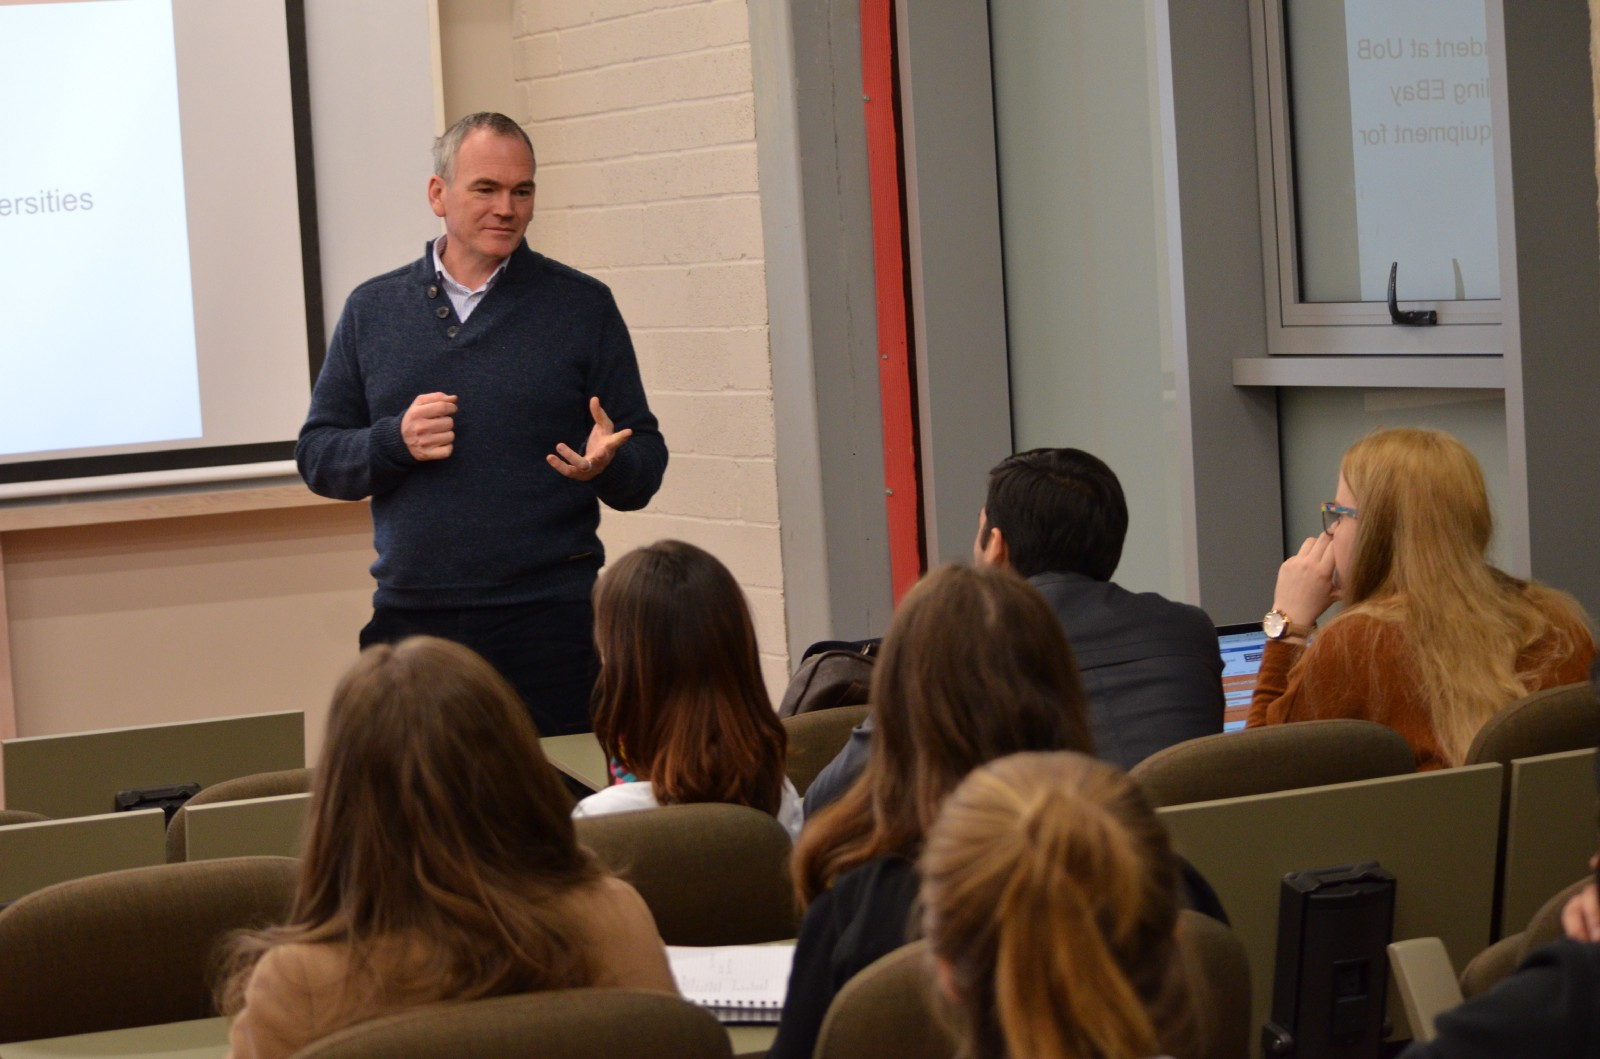 HFL cohort members attend a speaker event with Paul Adams (Virgin StartUp) hosted by the HFL at the Hult London campus